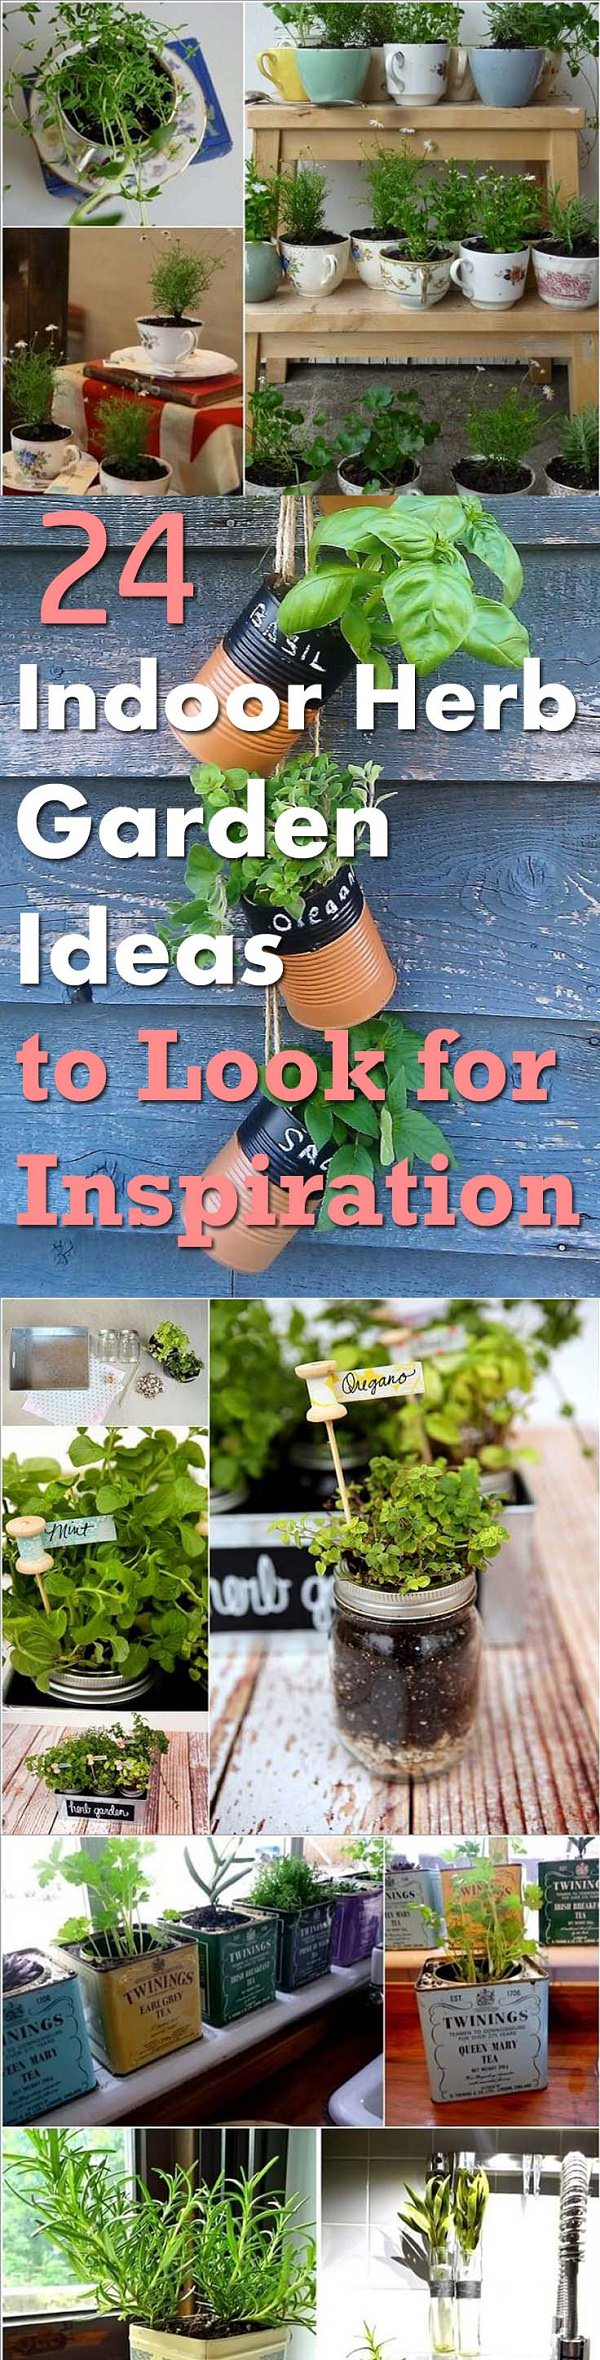 indoor herb garden ideas (2)